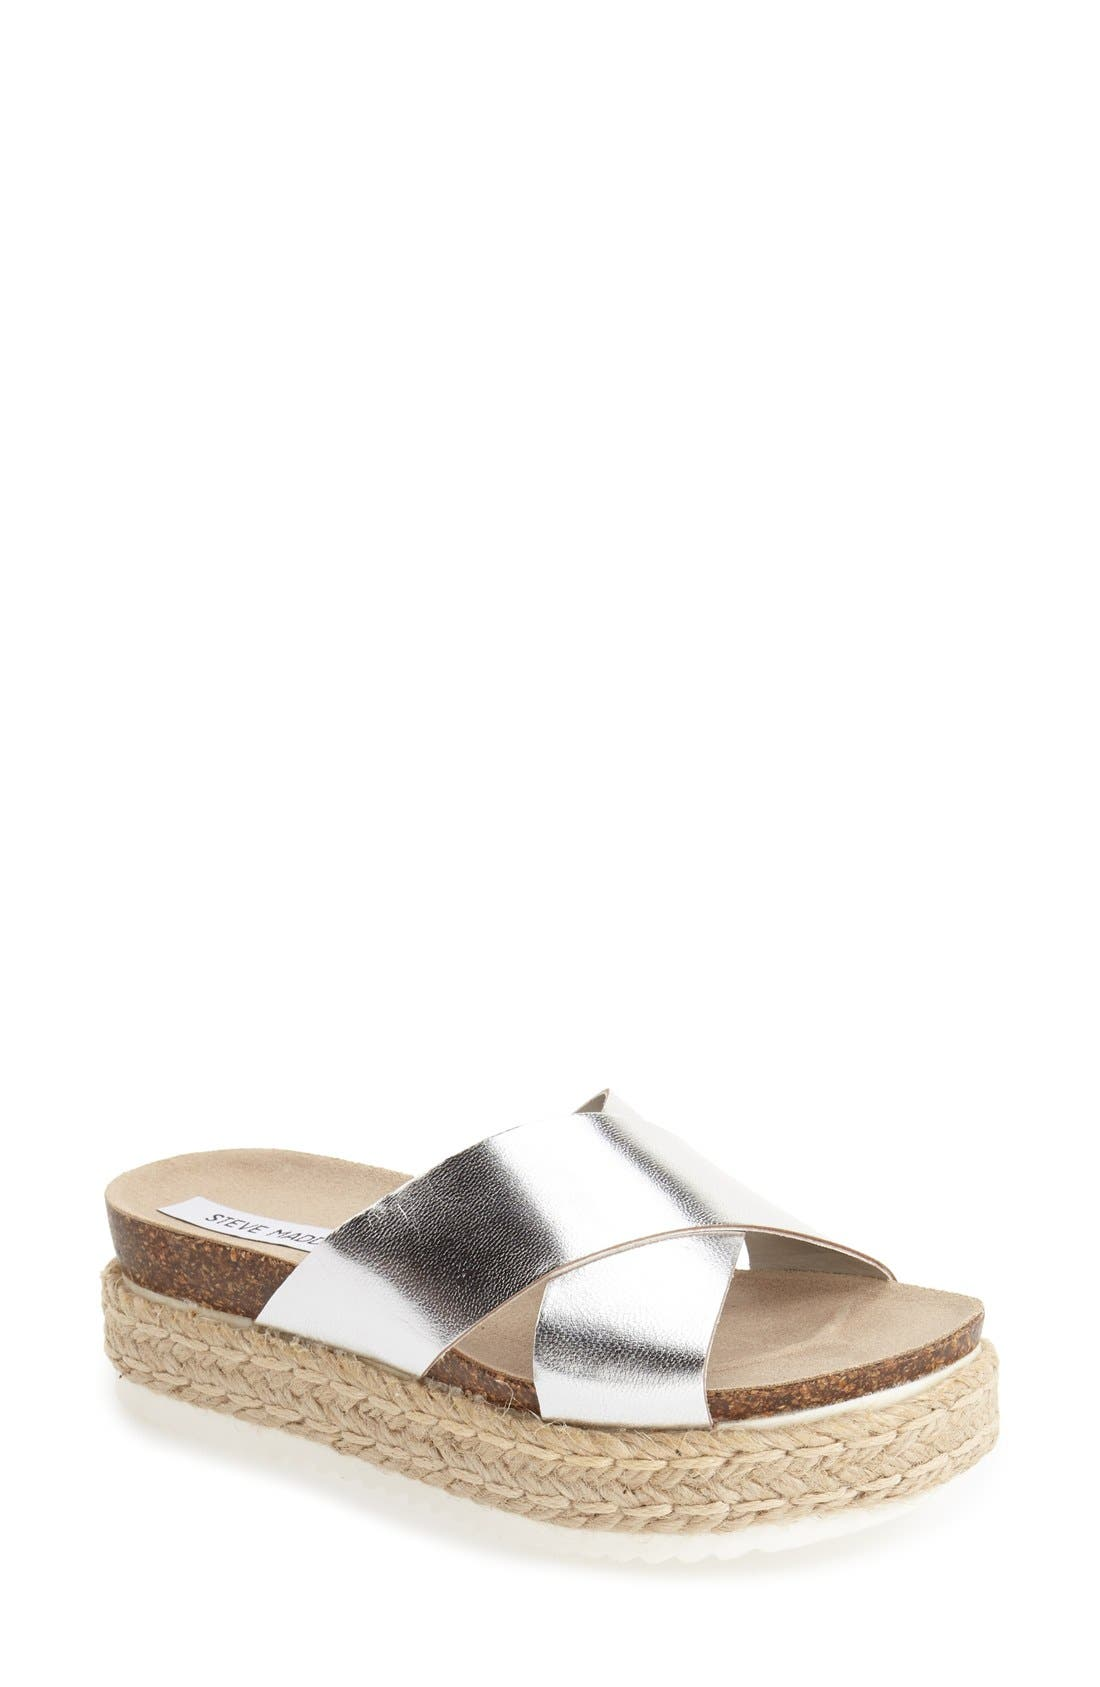 Alternate Image 1 Selected - Steve Madden 'Arran' Espadrille Platform Sandal (Women)